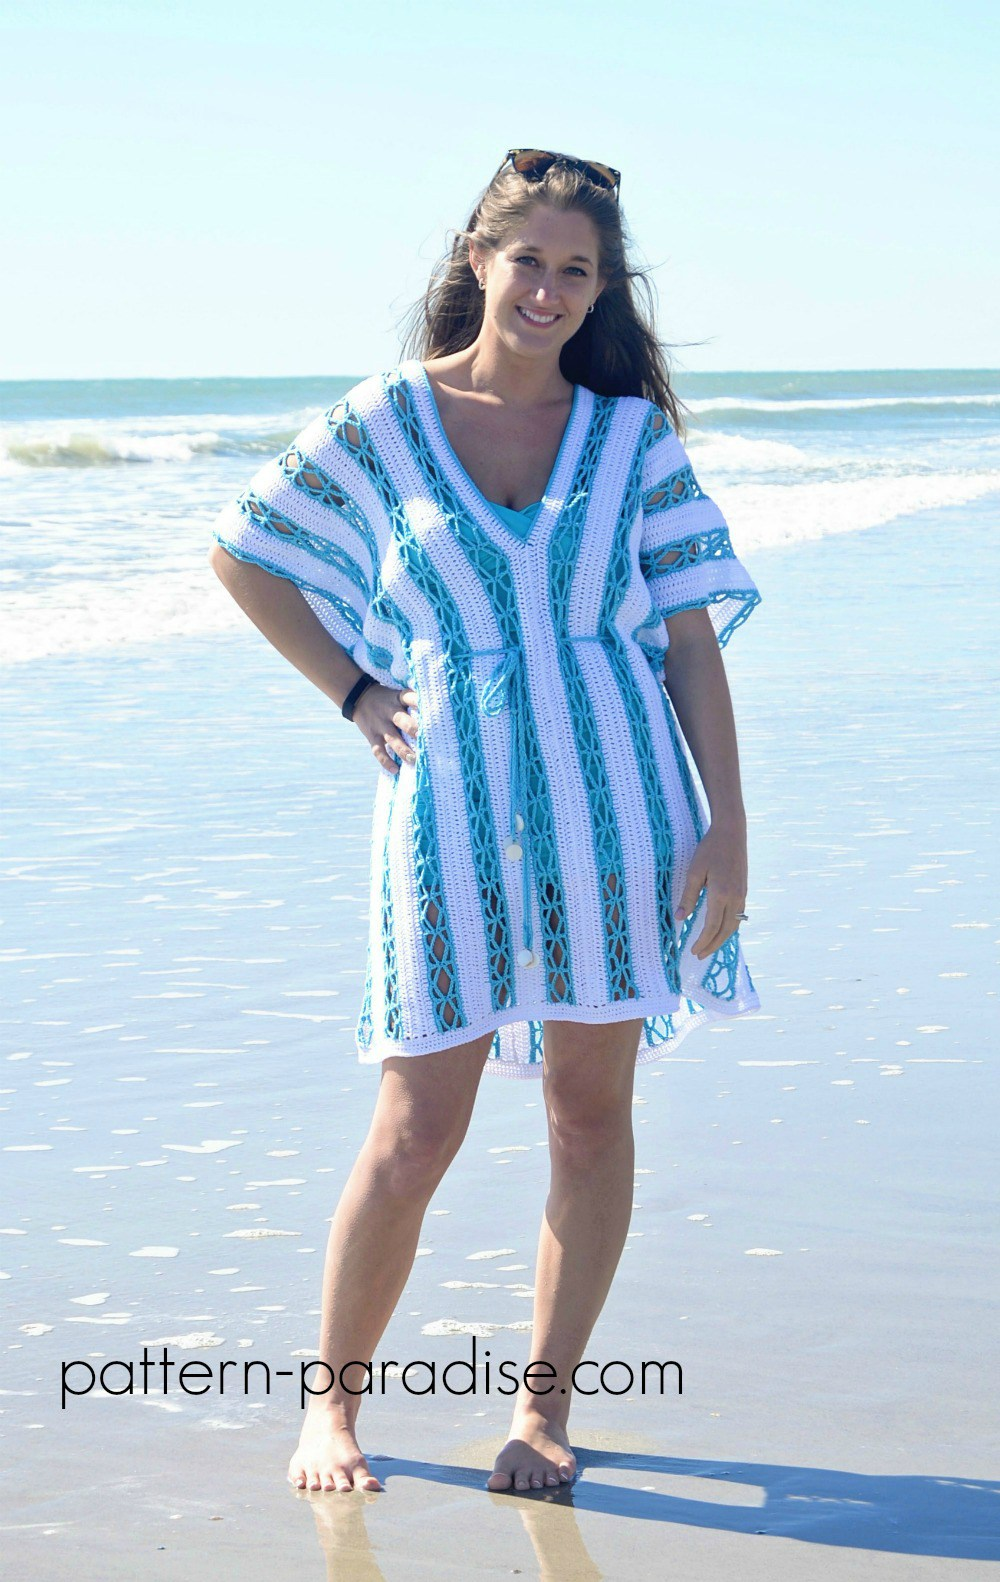 L-Beach-Day-Cover-Up-Tunic-by-Pattern-Paradise.com-8802.jpg